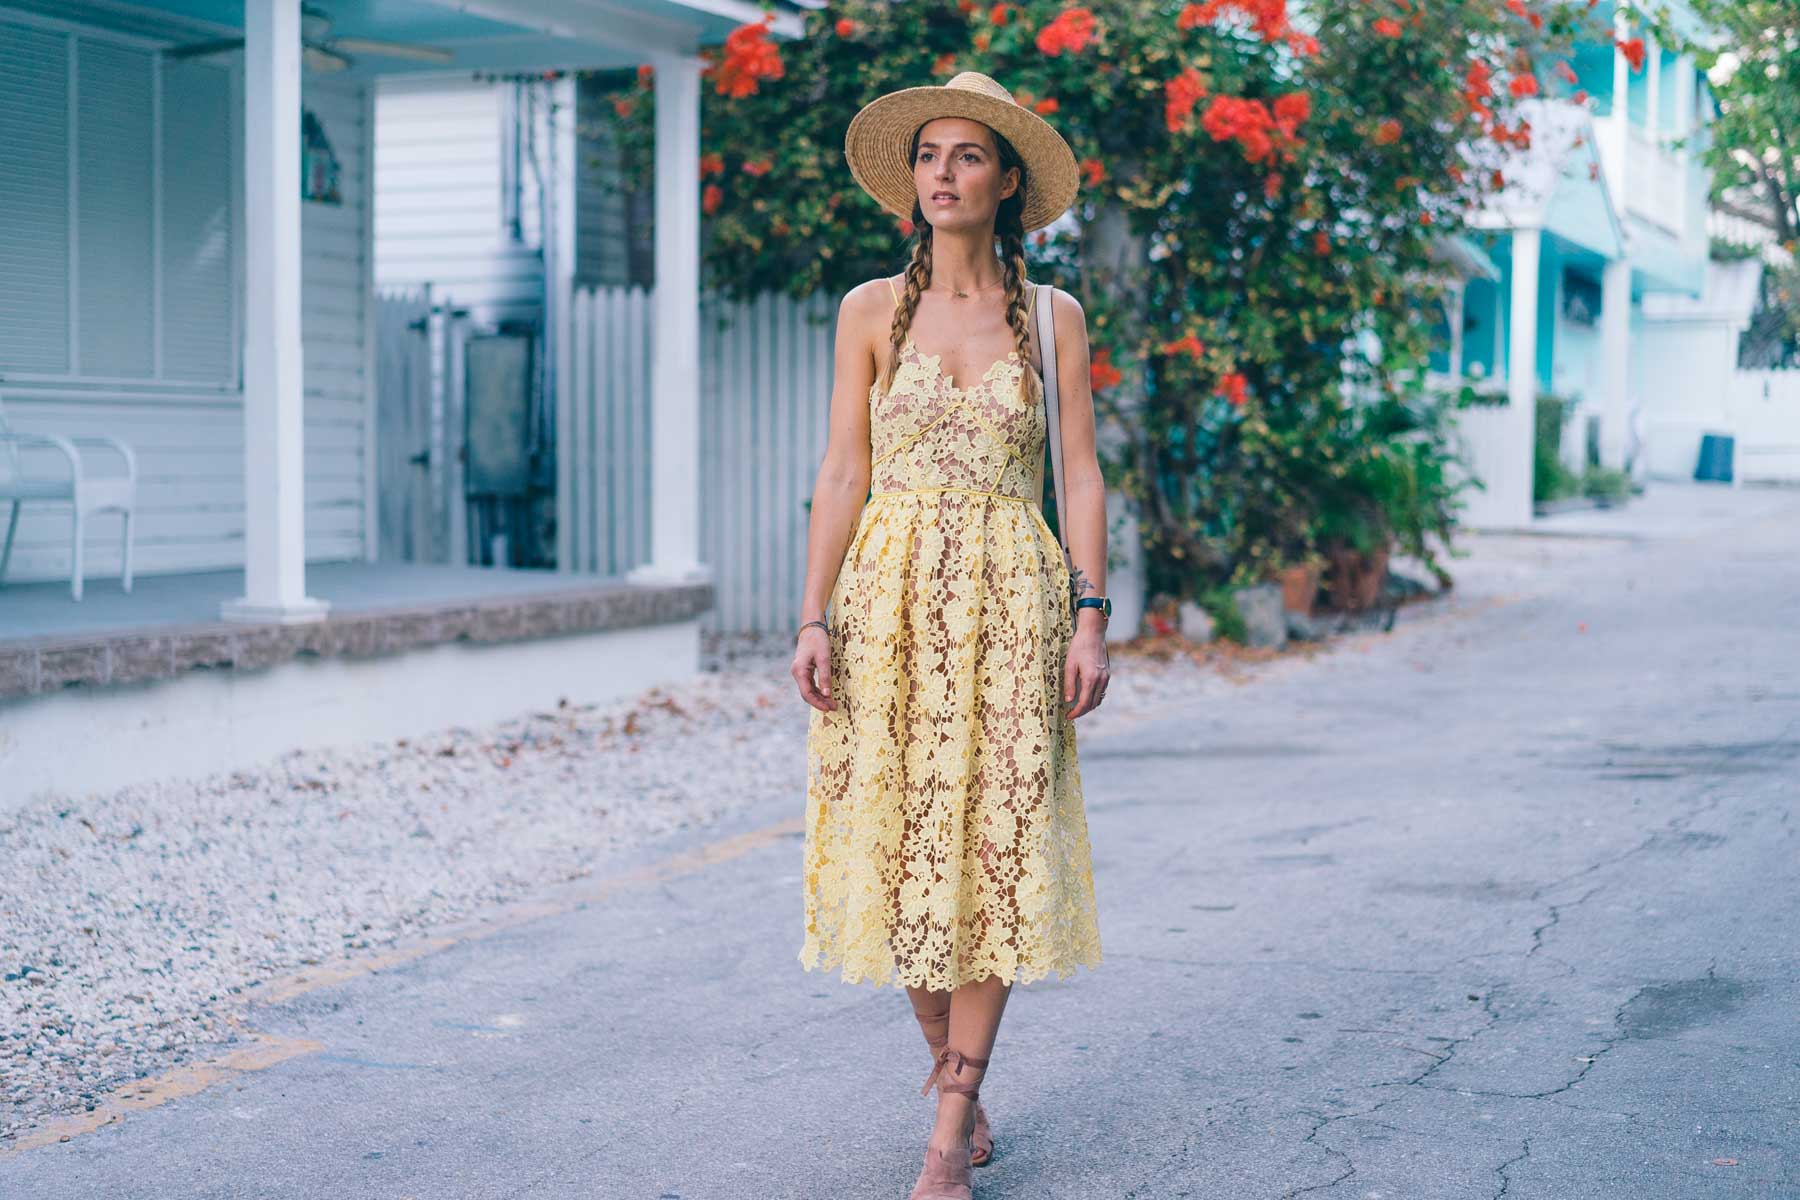 Jess Ann Kirby wearing a yellow lace midi dress in Key West